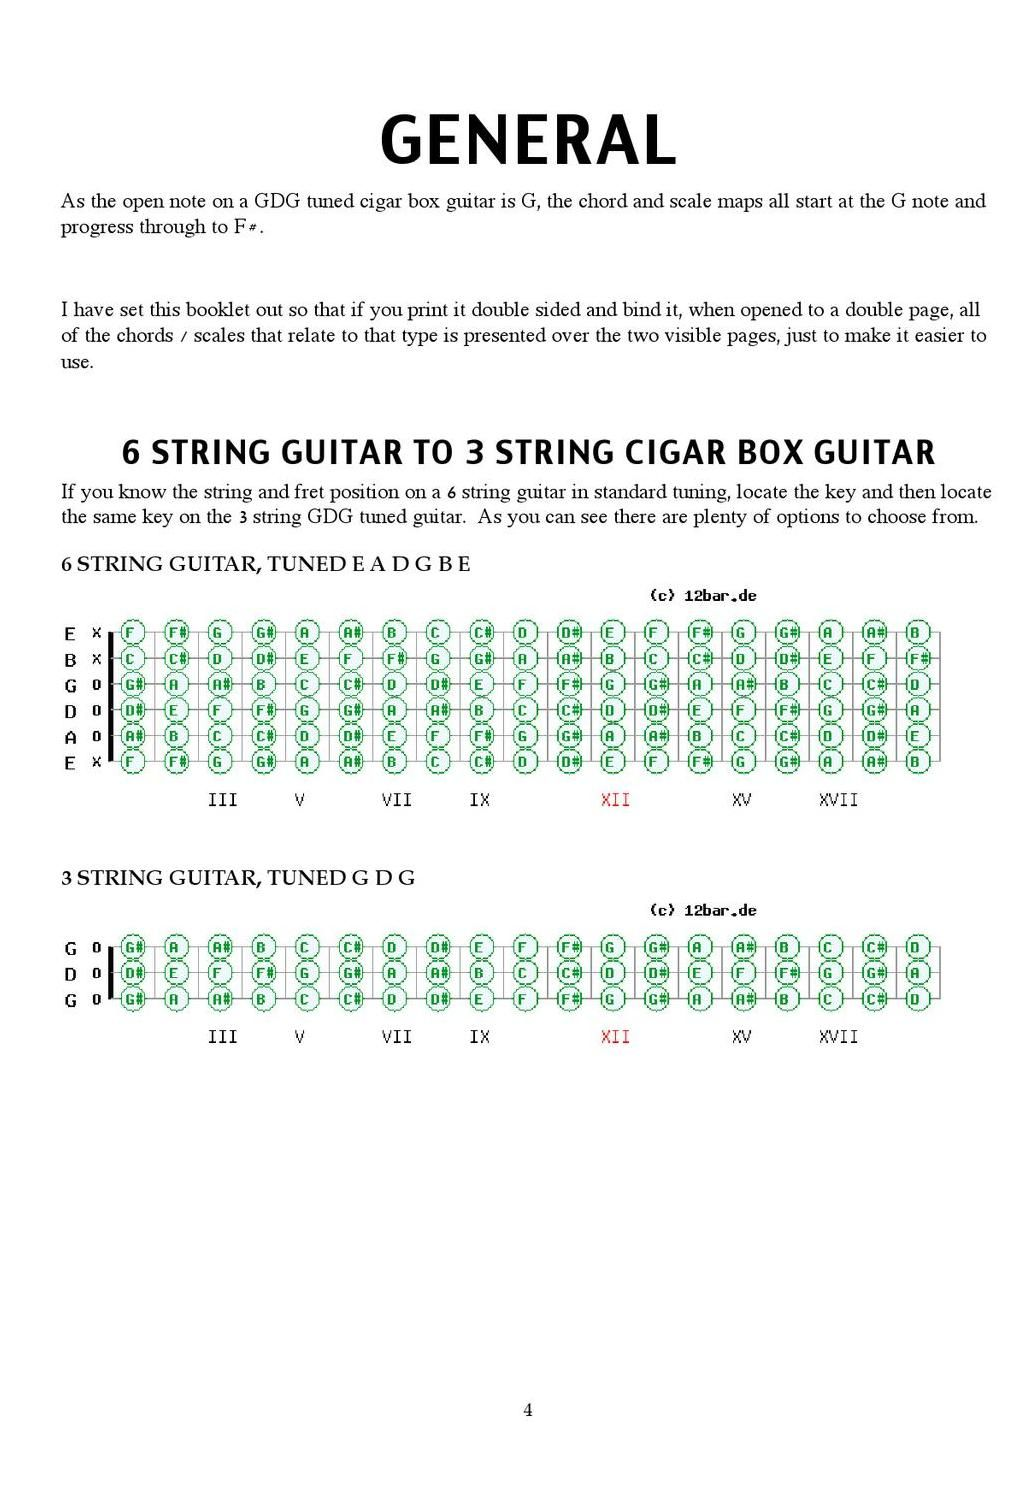 Gdg 3 string cigar box guitar scales and chords guitar scales clippedonissuu from gdg 3 string cigar box guitar scales and chords hexwebz Image collections